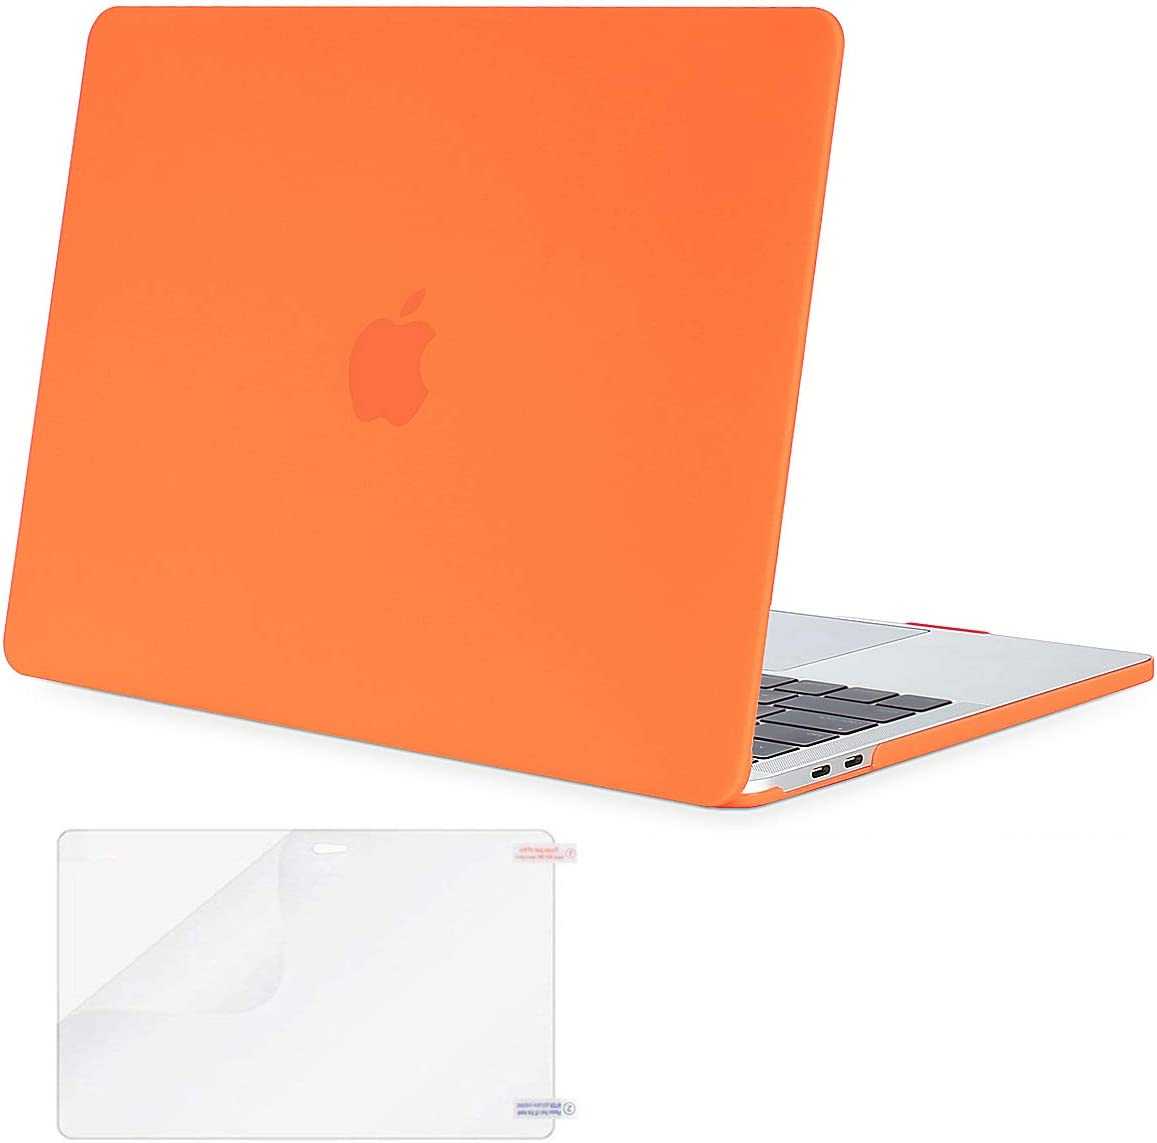 MOSISO MacBook Pro 13 inch Case 2019 2018 2017 2016 Release A2159 A1989 A1706 A1708, Plastic Hard Shell Case&Screen Protector Compatible with MacBook Pro 13 inch with/Without Touch Bar, Orange